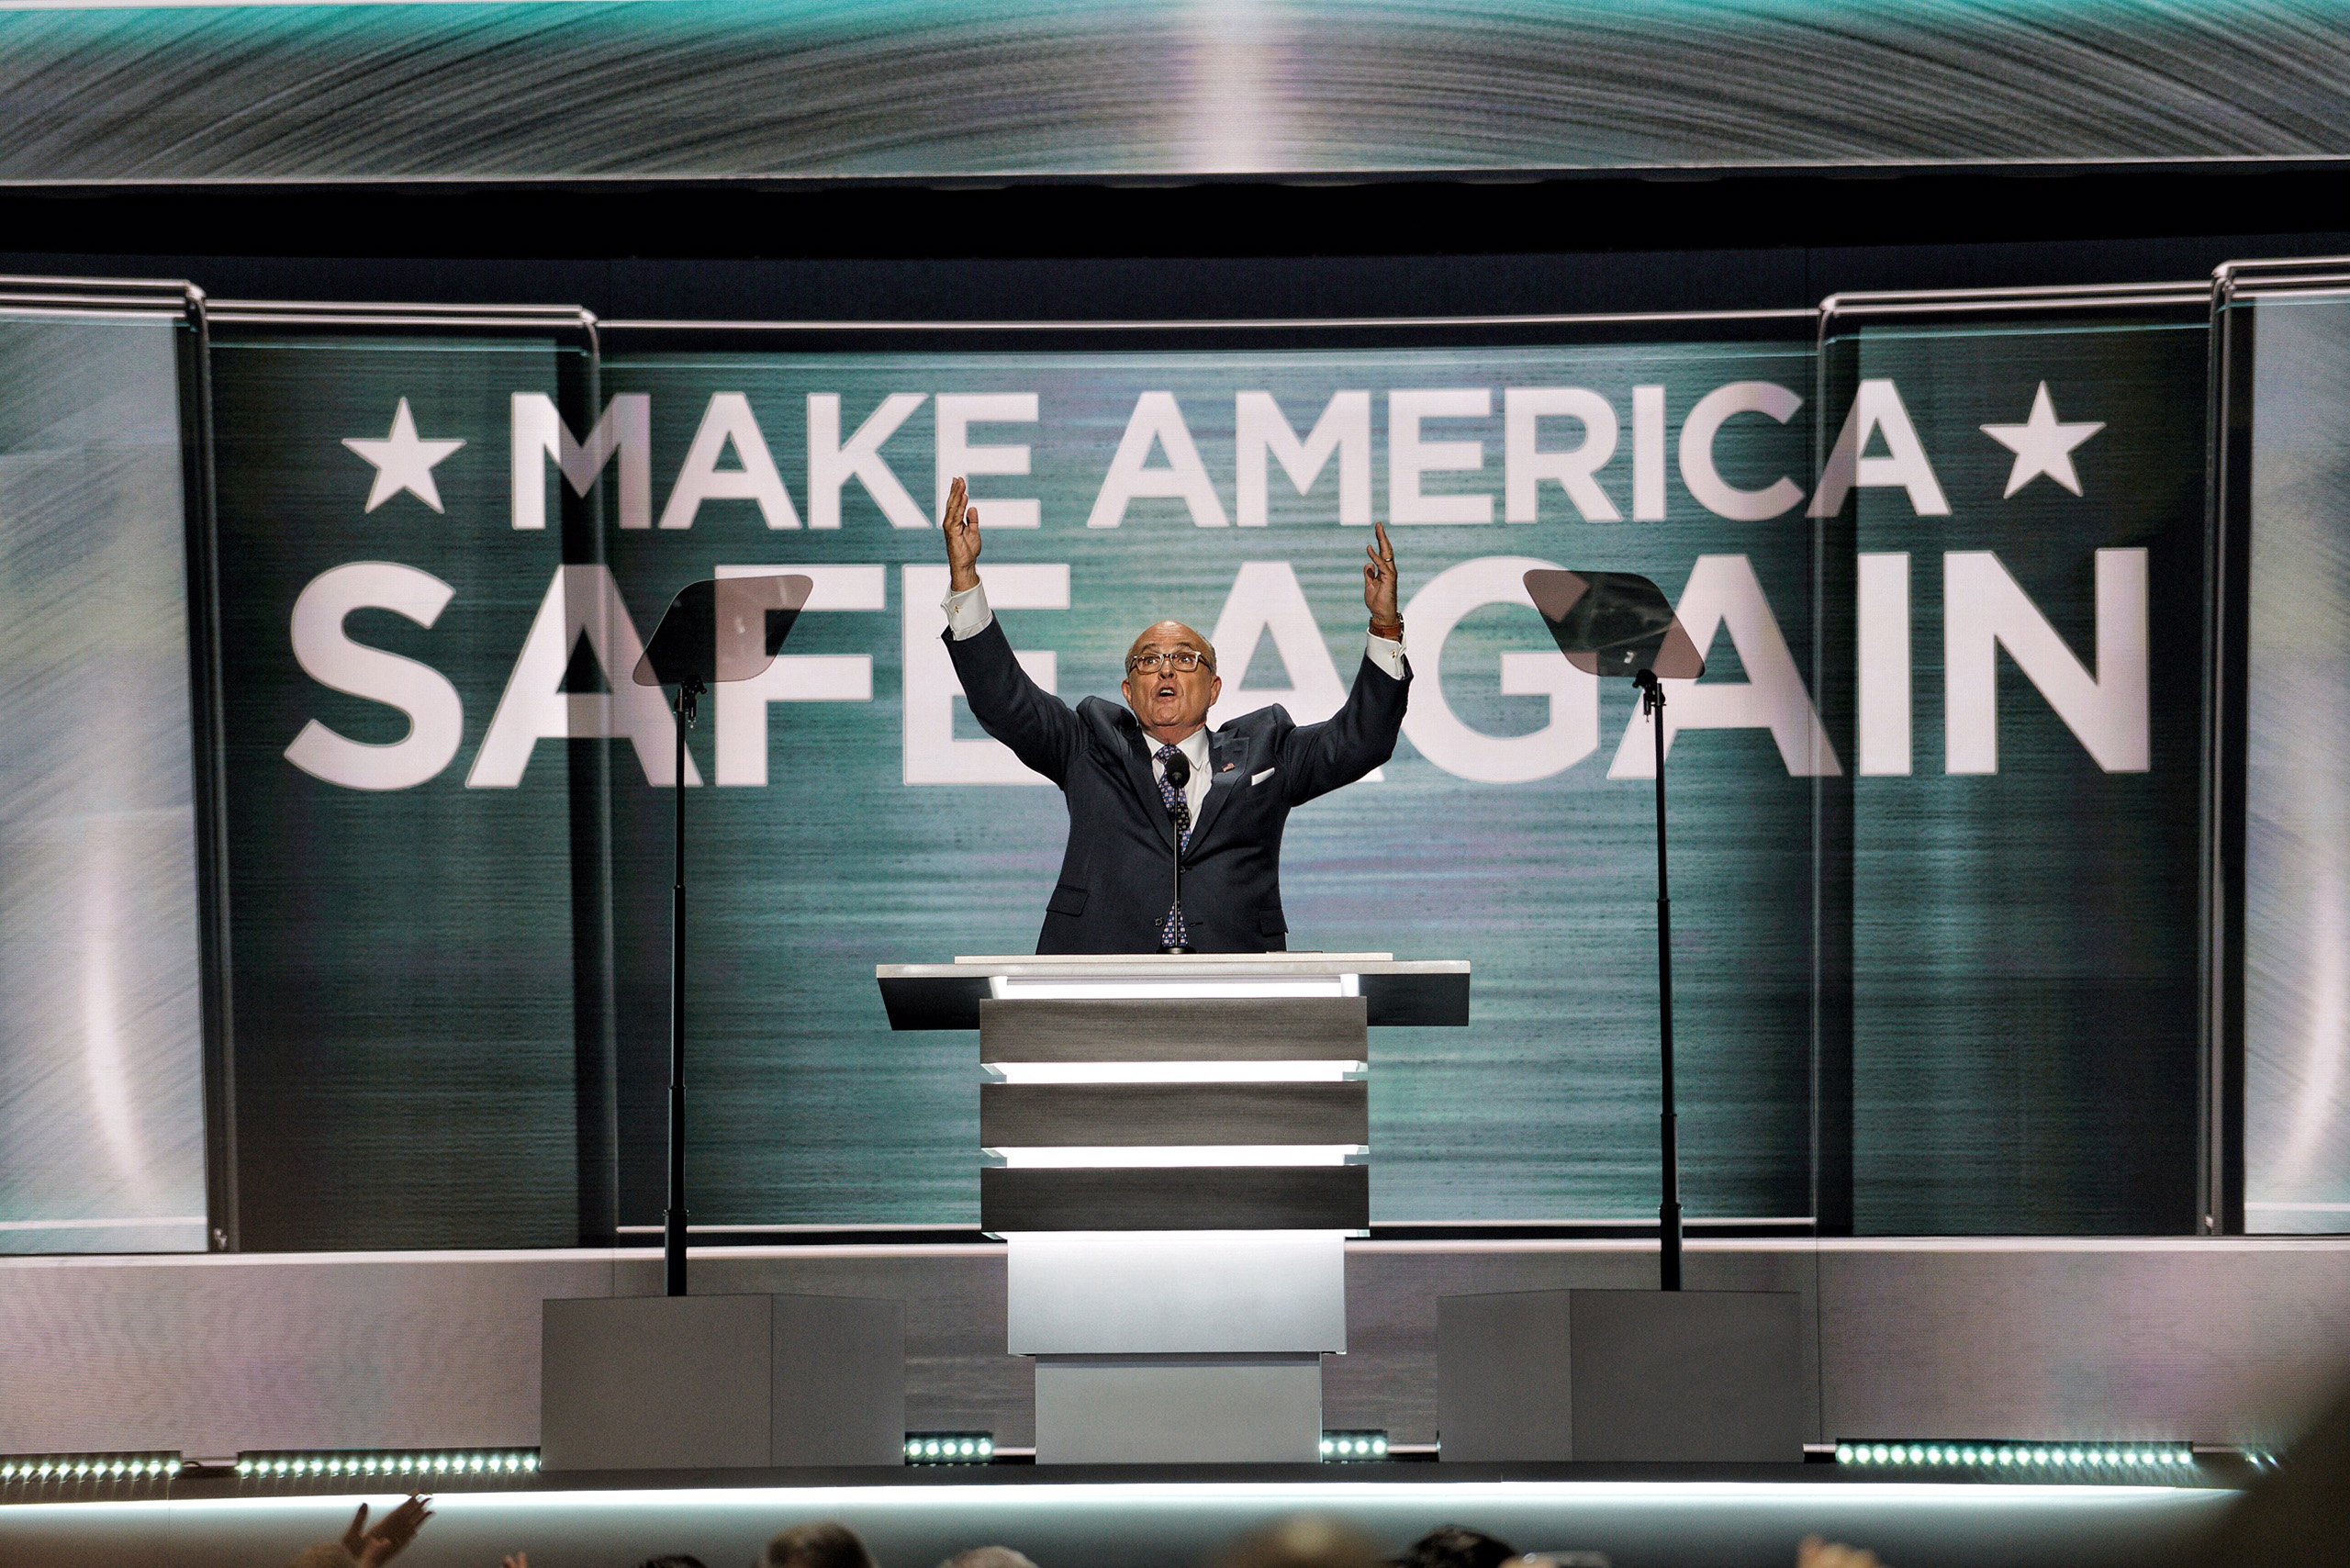 Former New York City Mayor Rudy Giuliani delivers a speech on the first day of the Republican National Convention on July 18, 2016 at the Quicken Loans Arena in Cleveland, Ohio.